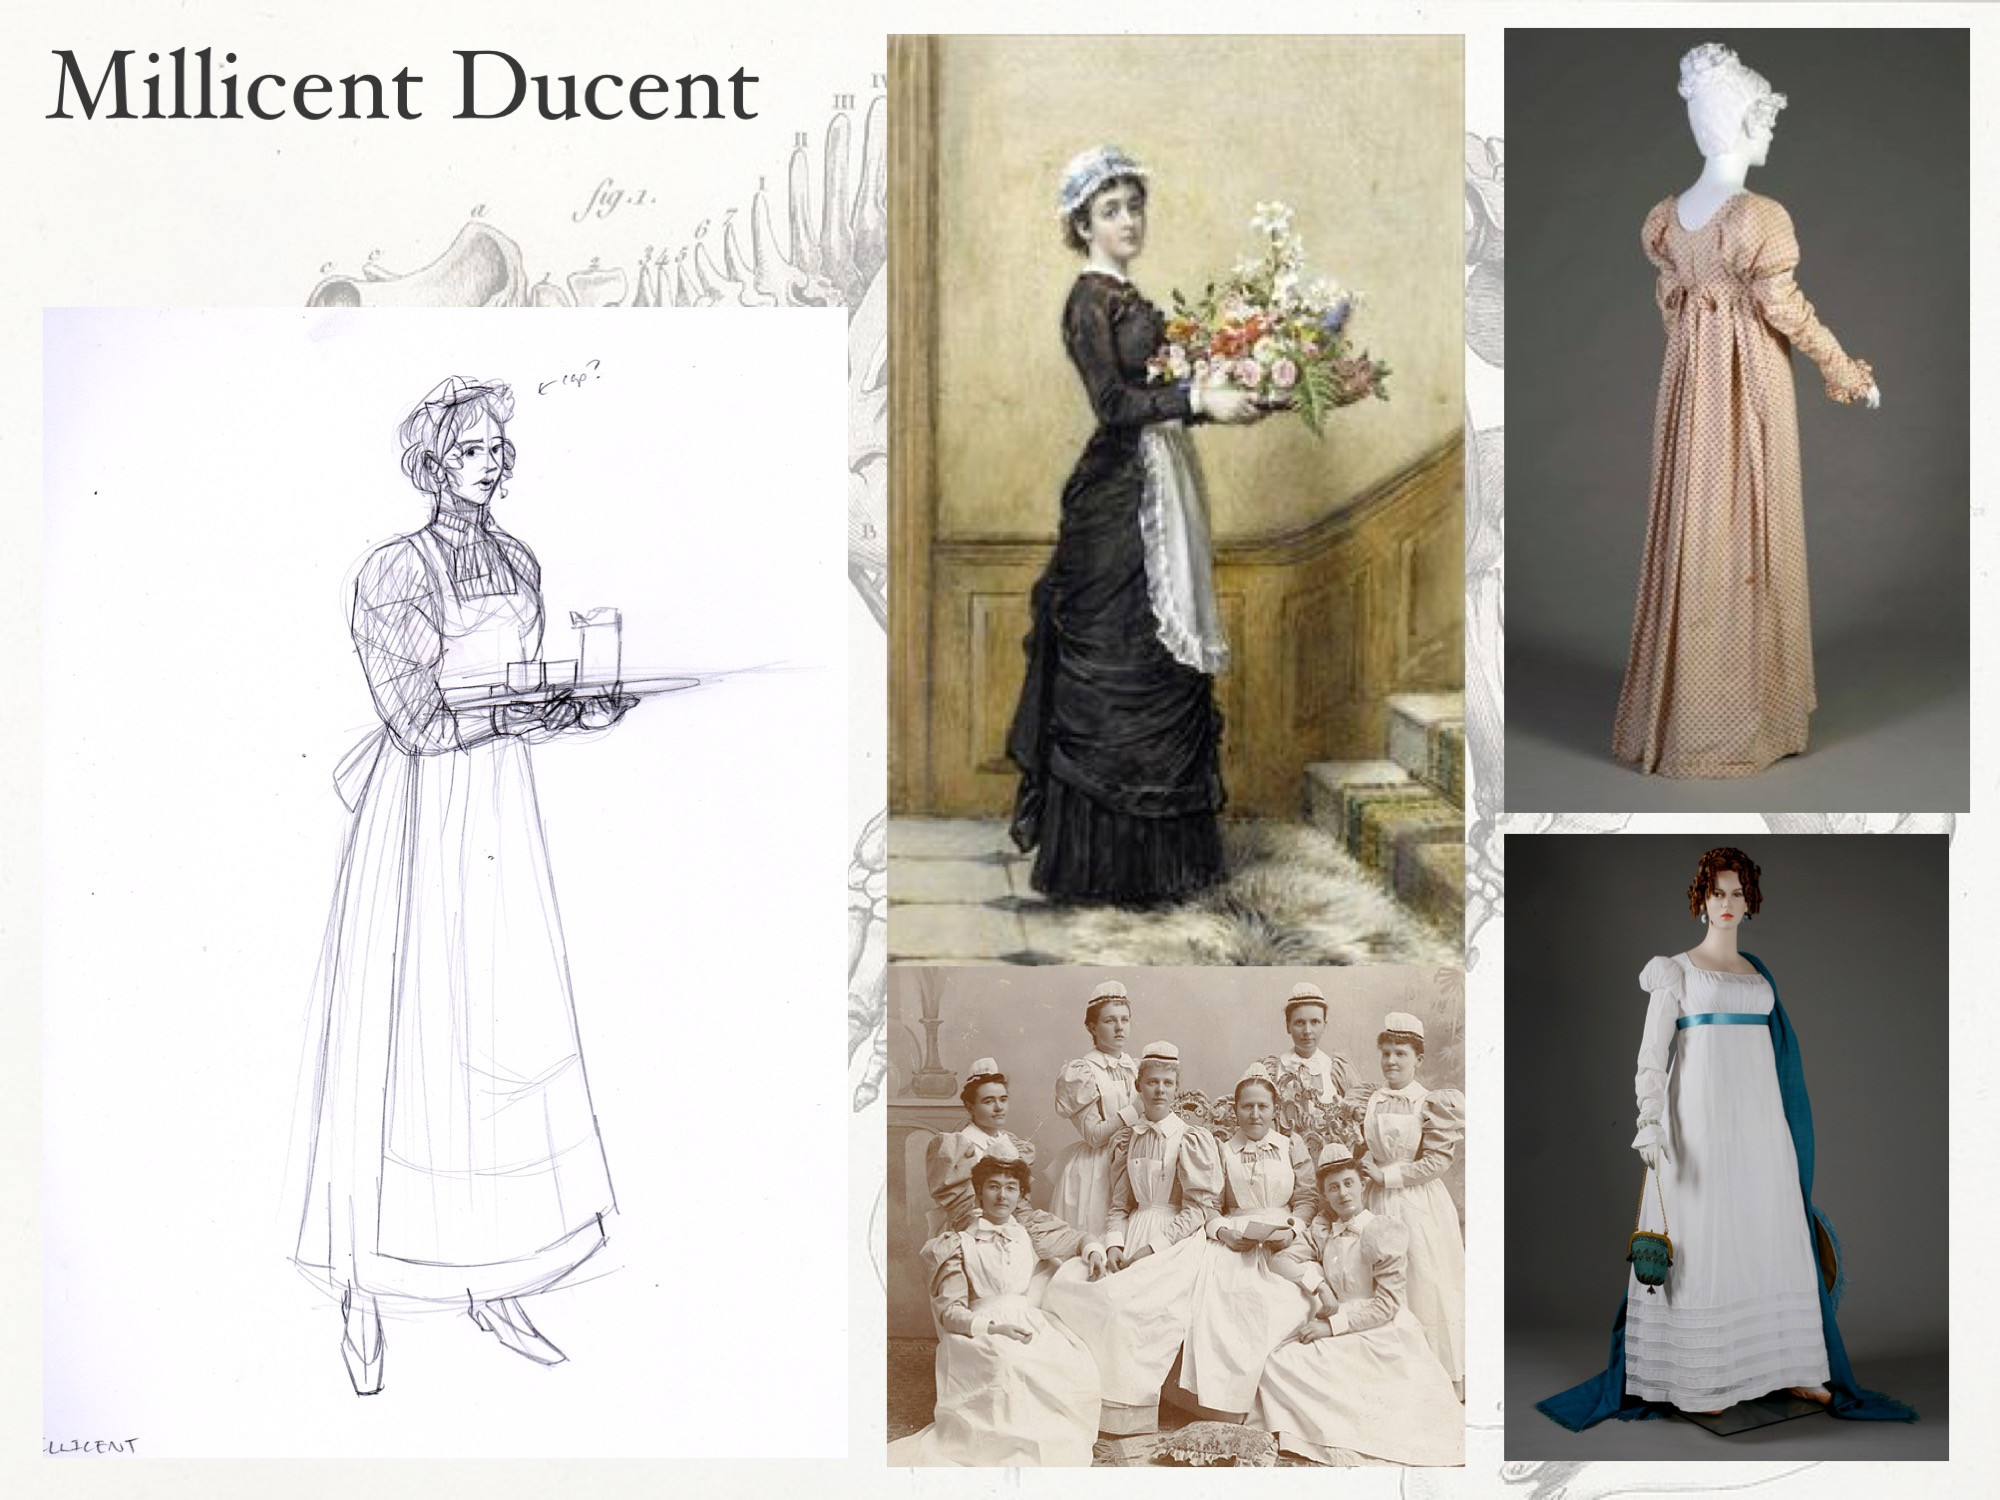 Millicent Ducent: reference. Her dress didn't actually exist in historical record; it had to be a combination of a nurses' uniform, a Victorian maid's dress, and have high waist of a 1810's gown.